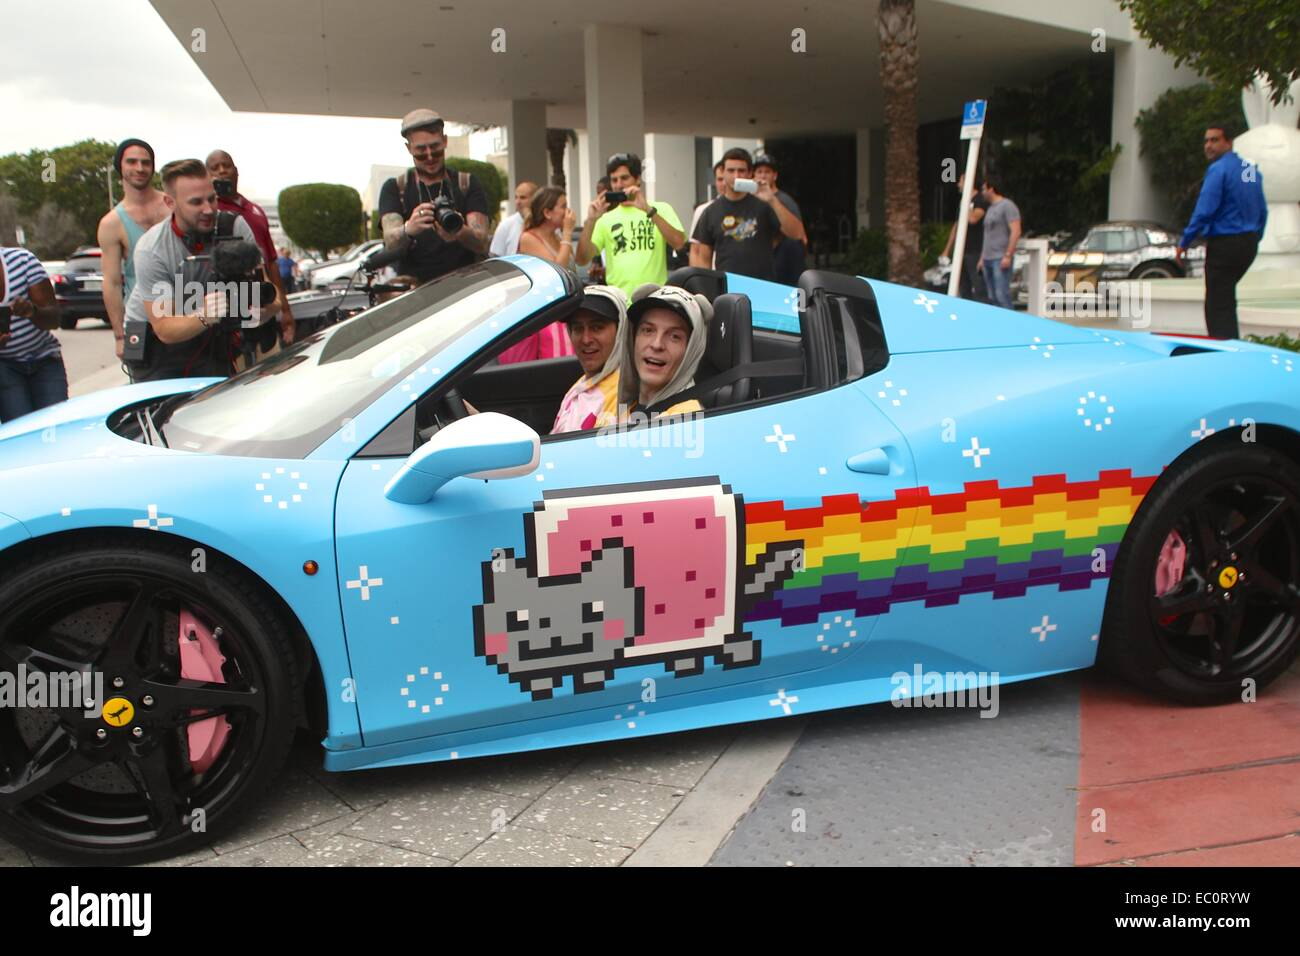 Deadmau5 aka Joel Zimmerman with his Ferrari 458 Italia wrapped in  Nyan Cat   livery at the Gumball 3000 registration in Miami a22f2abef